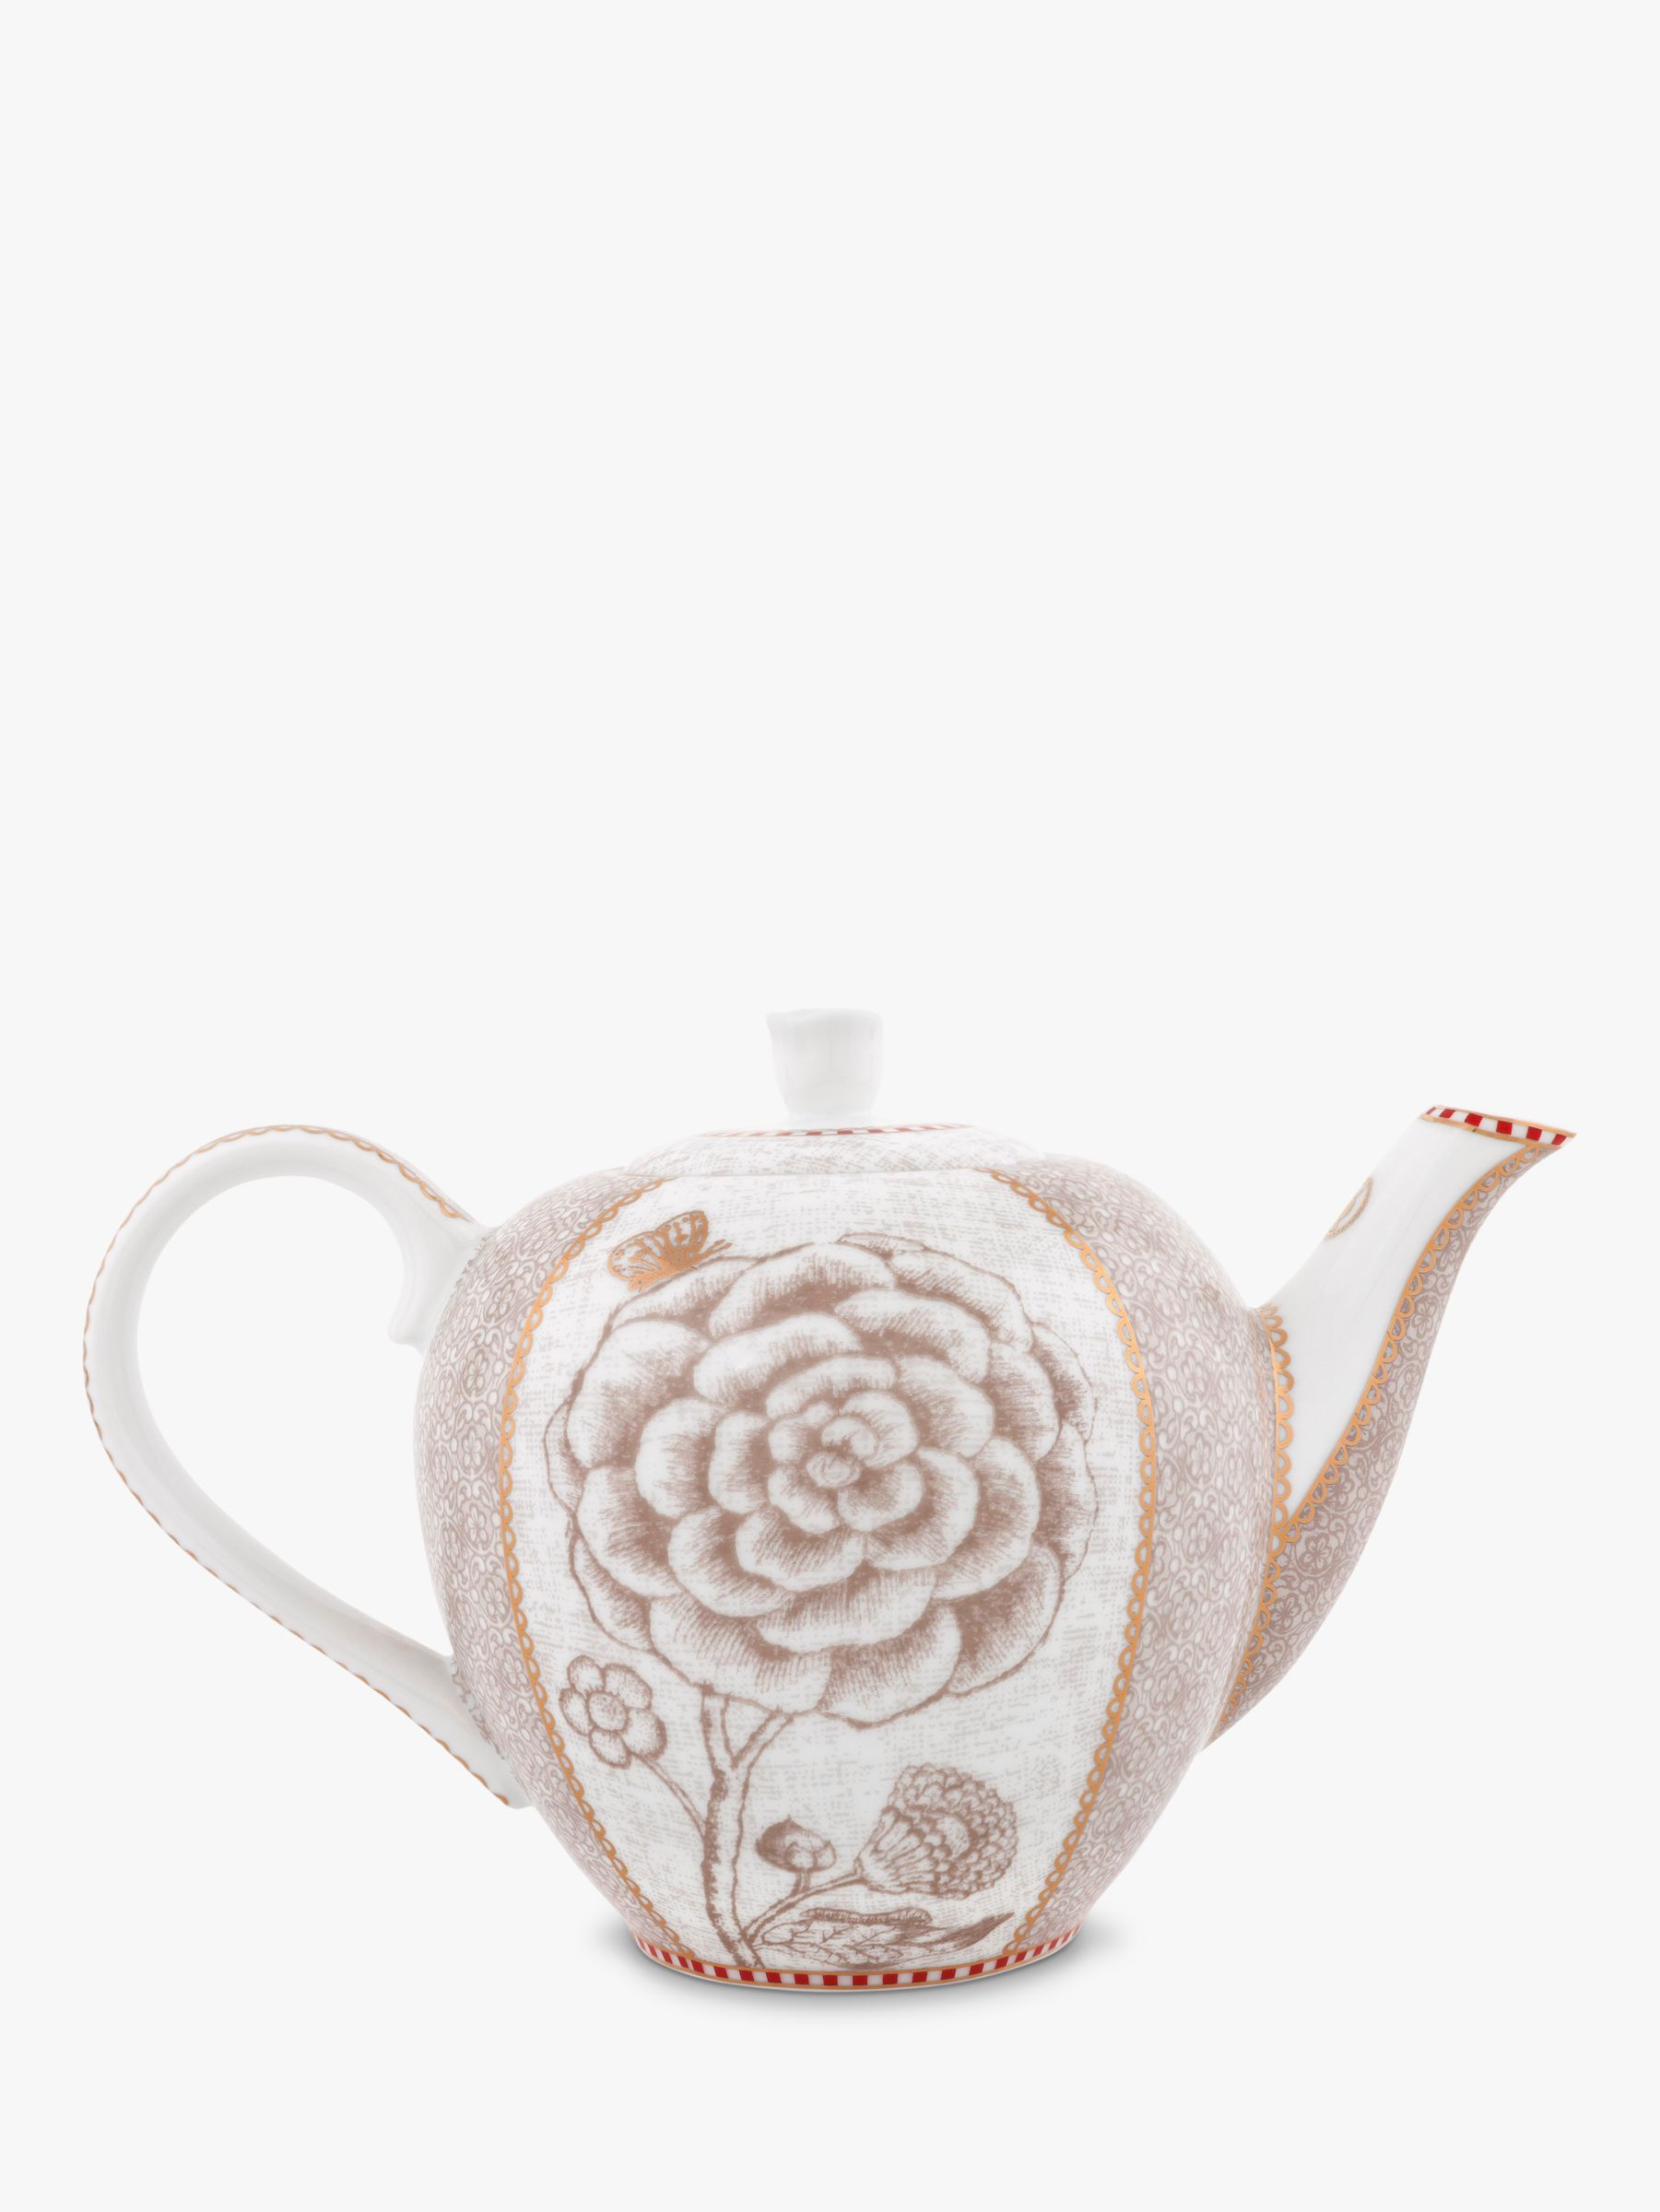 PiP Studio PiP Studio Spring to Life Small Teapot, Cream